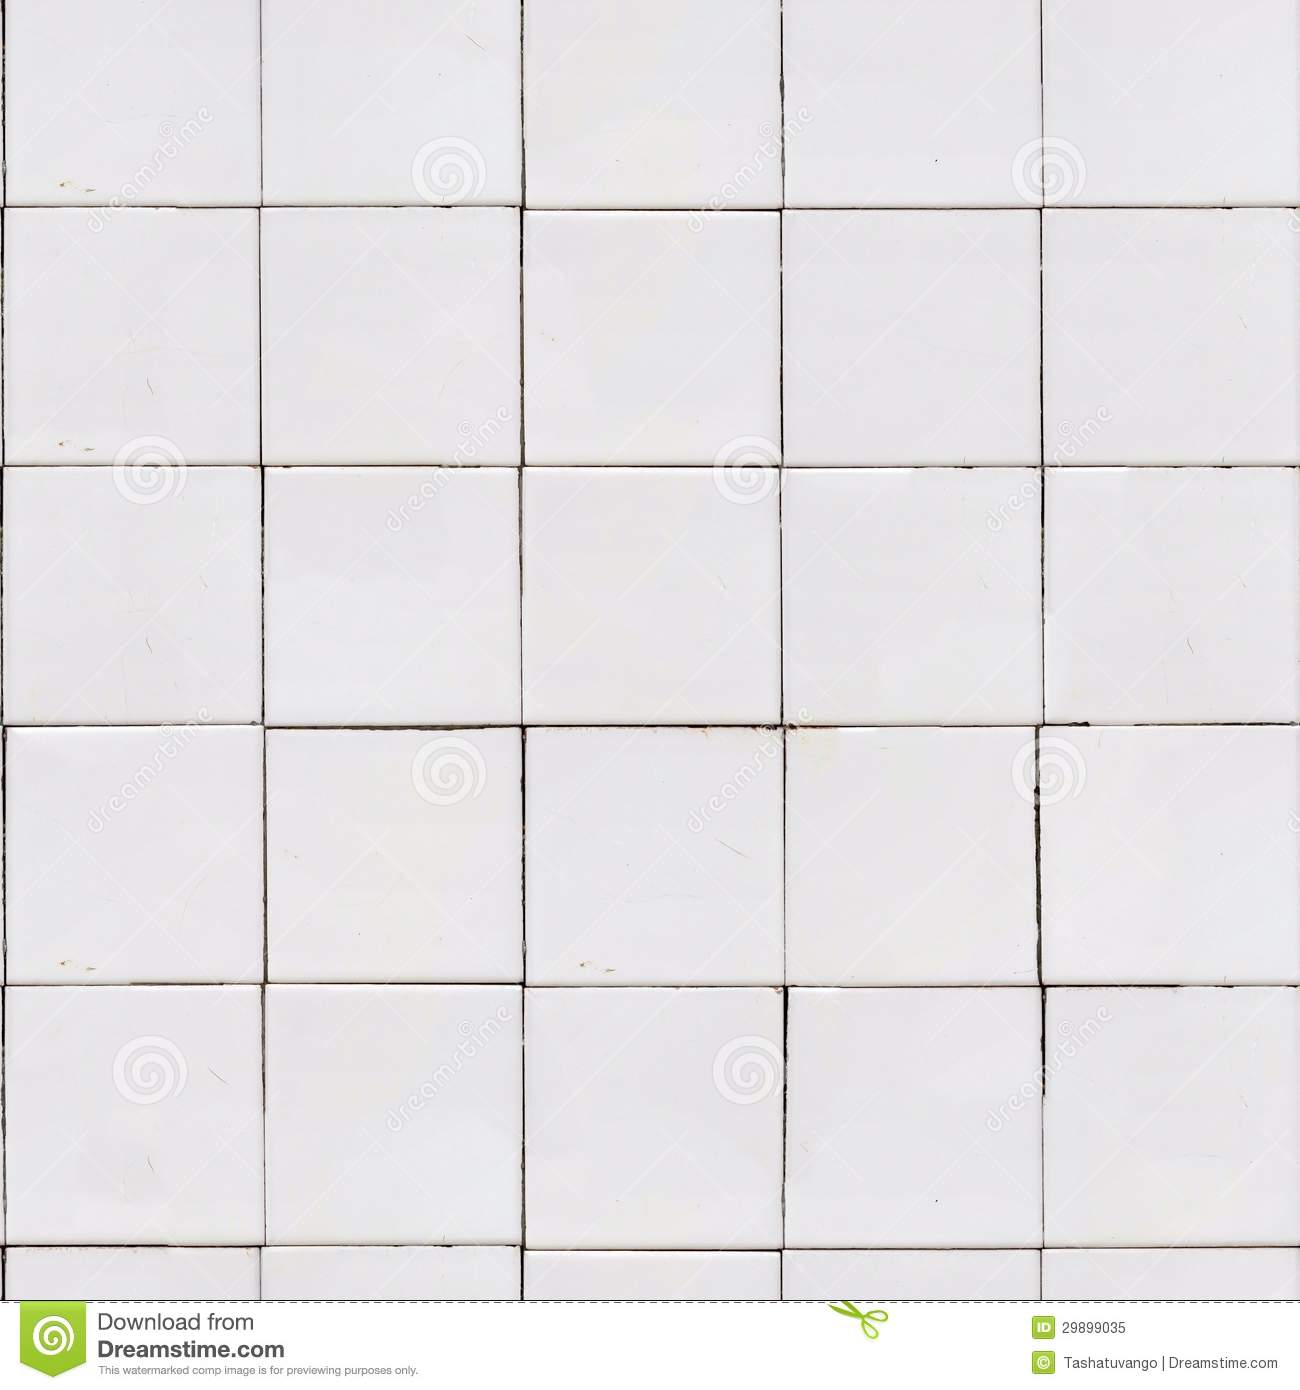 White Old Tile Wall. Seamless Tileable Texture.